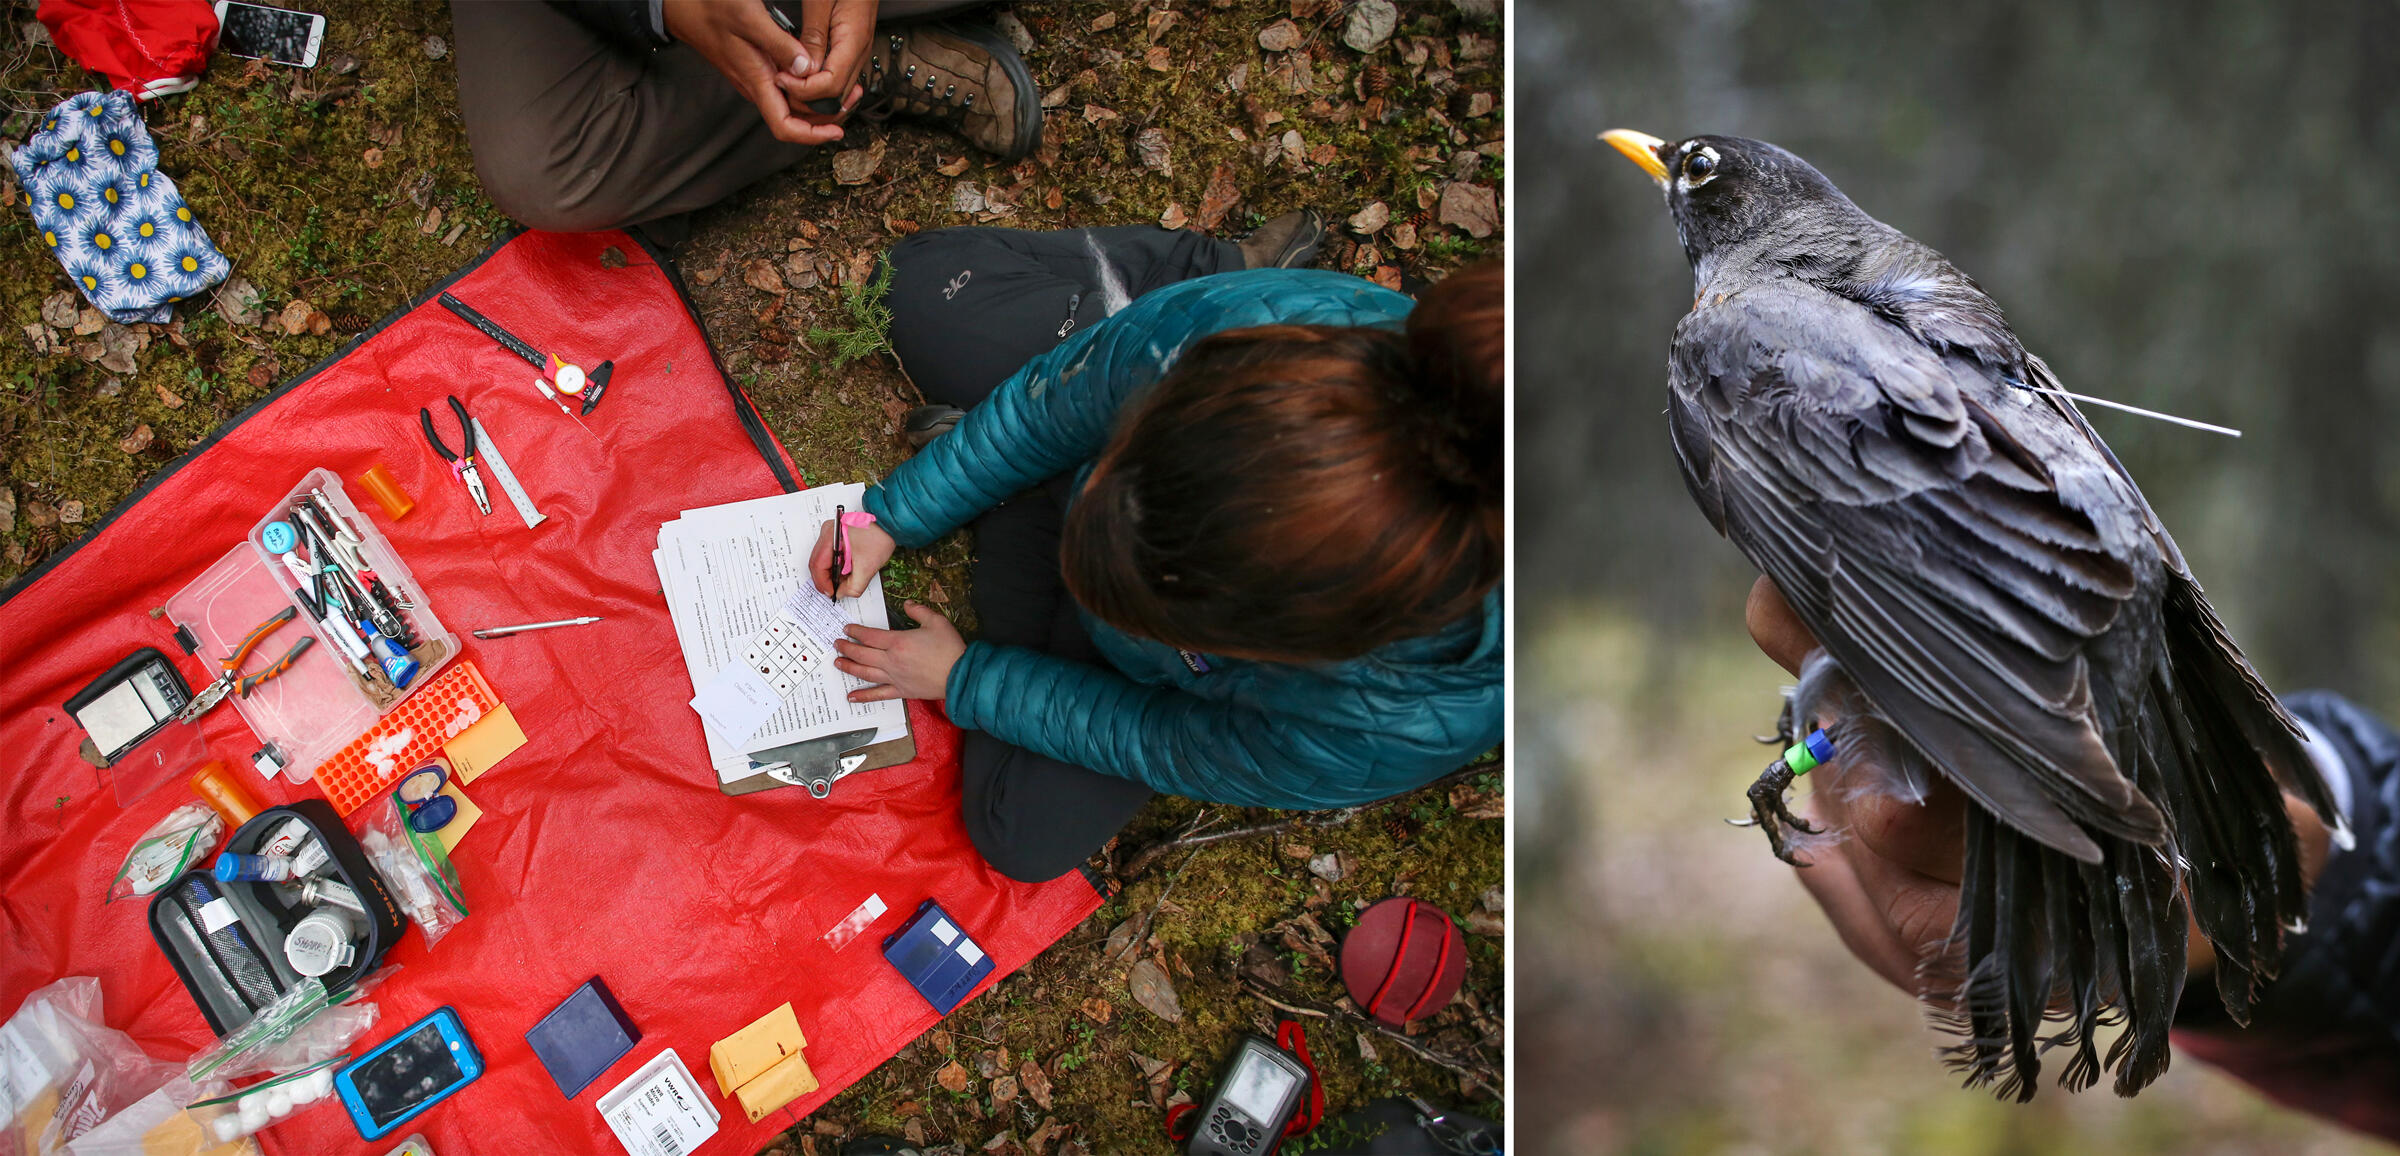 Emily Williams, a former biologist at Alaska's Denali National Park, takes notes along with one of her colleagues (left). A captured American Robin with GPS tag attached (right). Photos: Emily Mesner/NPS